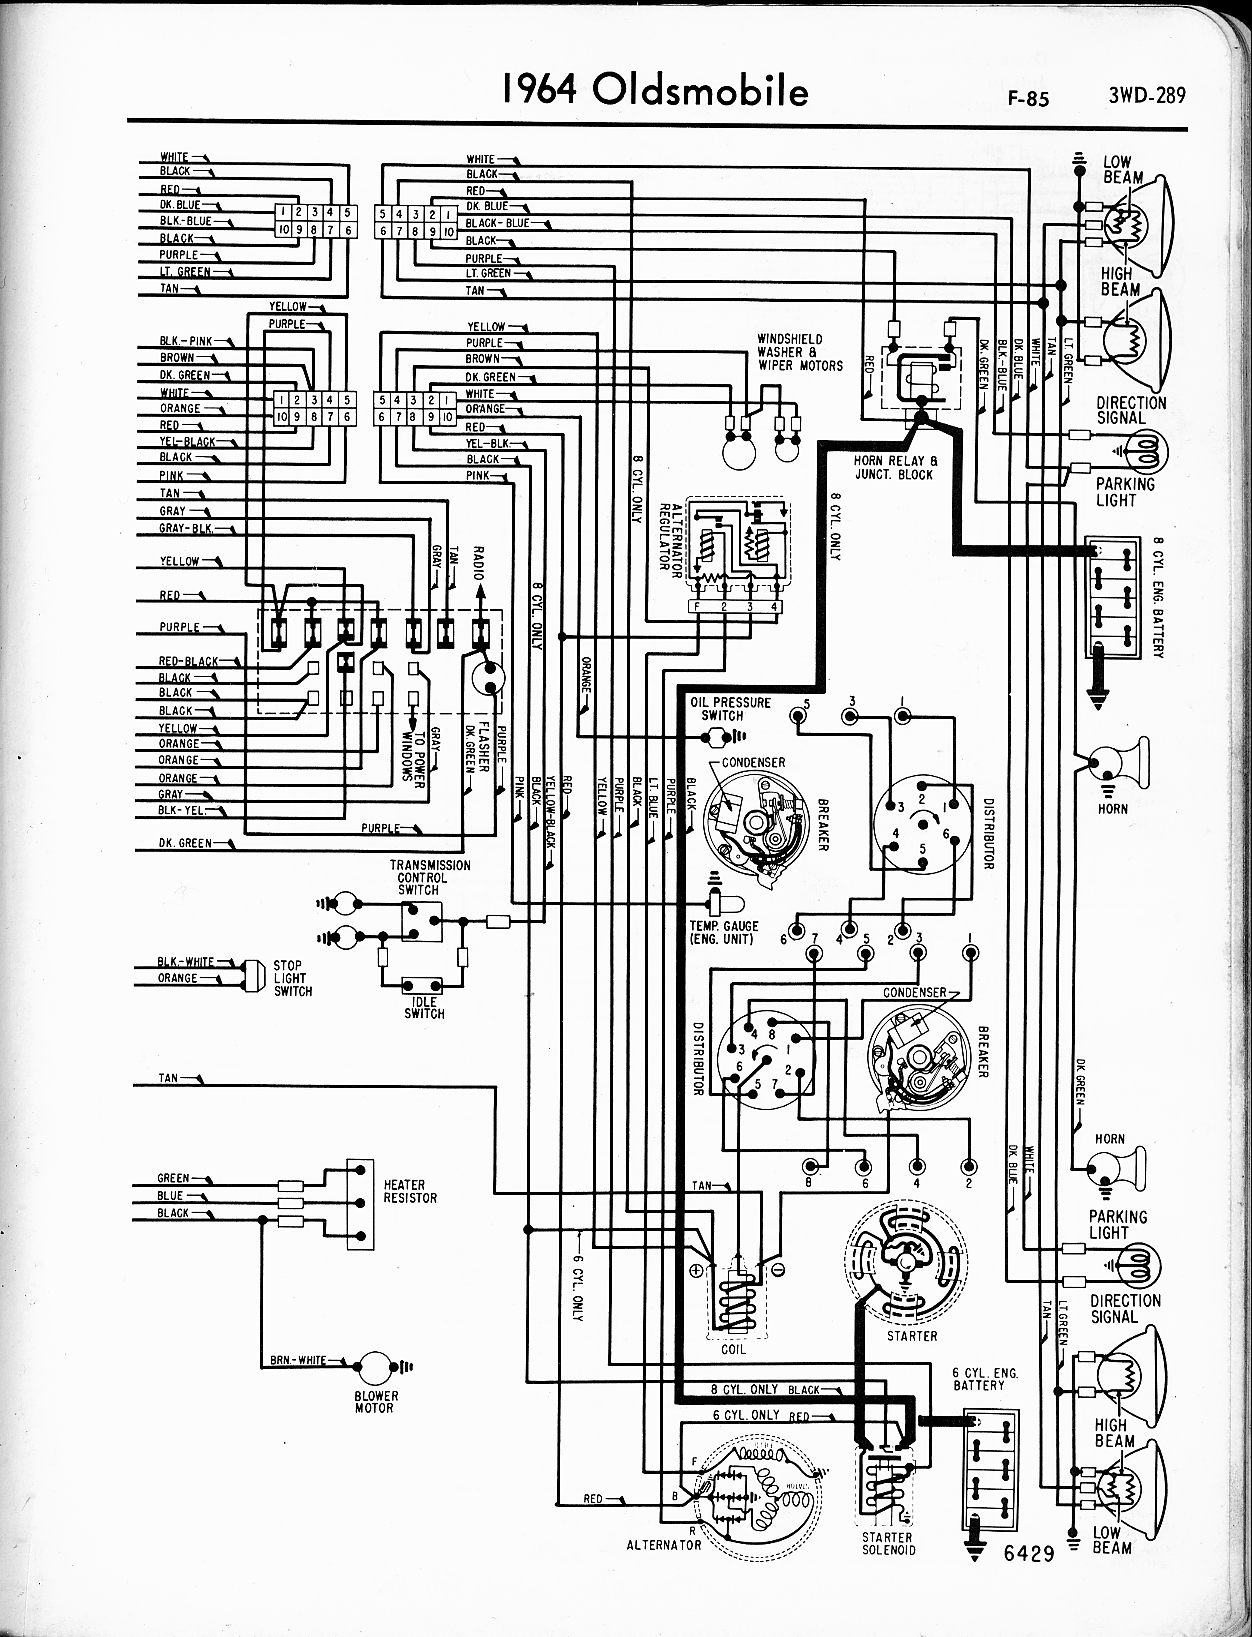 Radio Wiring Harness Diagram On Oldsmobile Silhouette